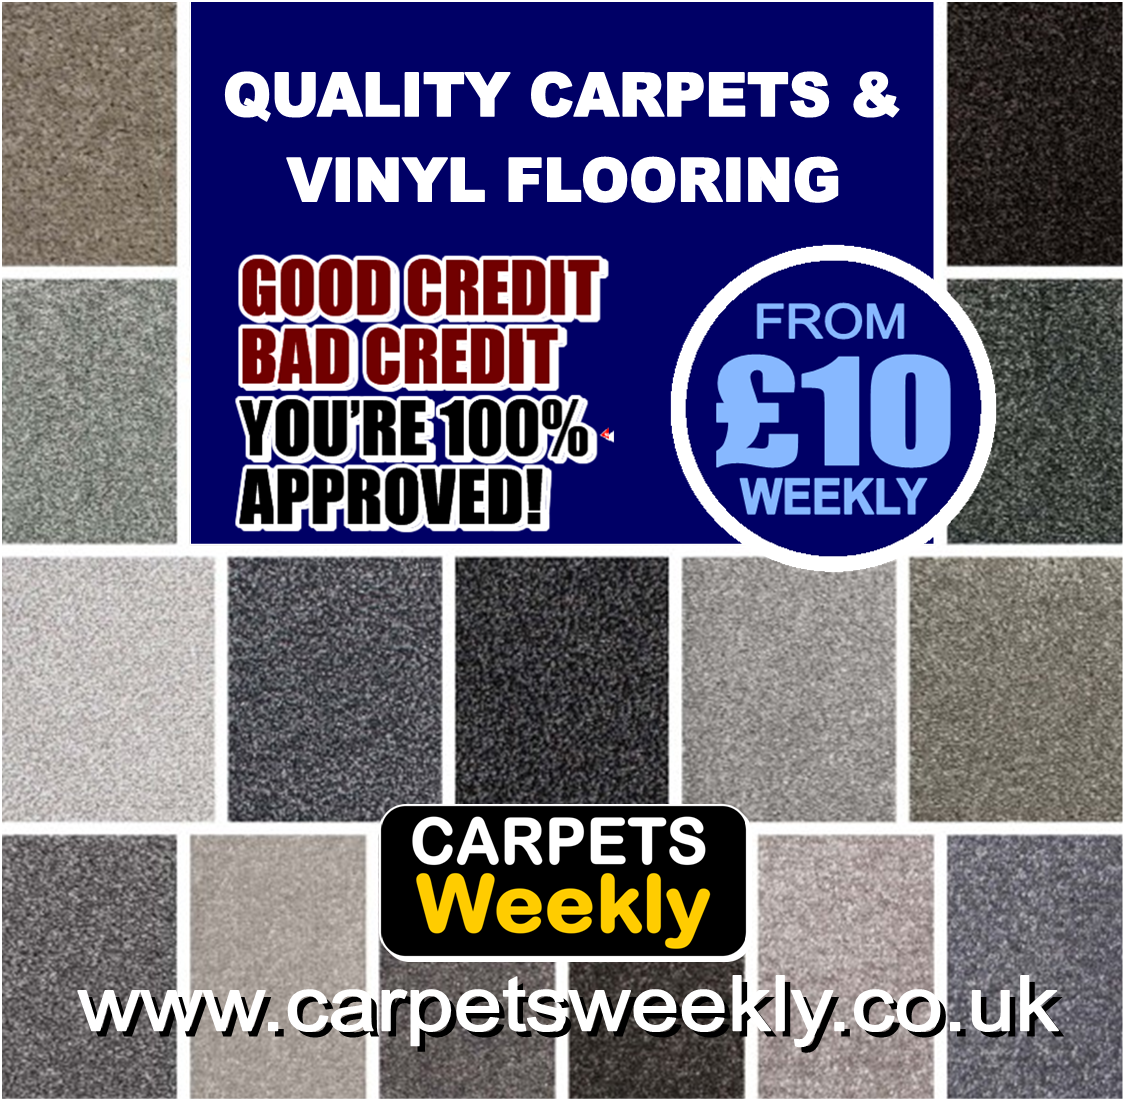 QUALITY CARPETS GUARANTEED ACCEPTANCE with Carpets Weekly in Stockton on Tees tel 01642983088